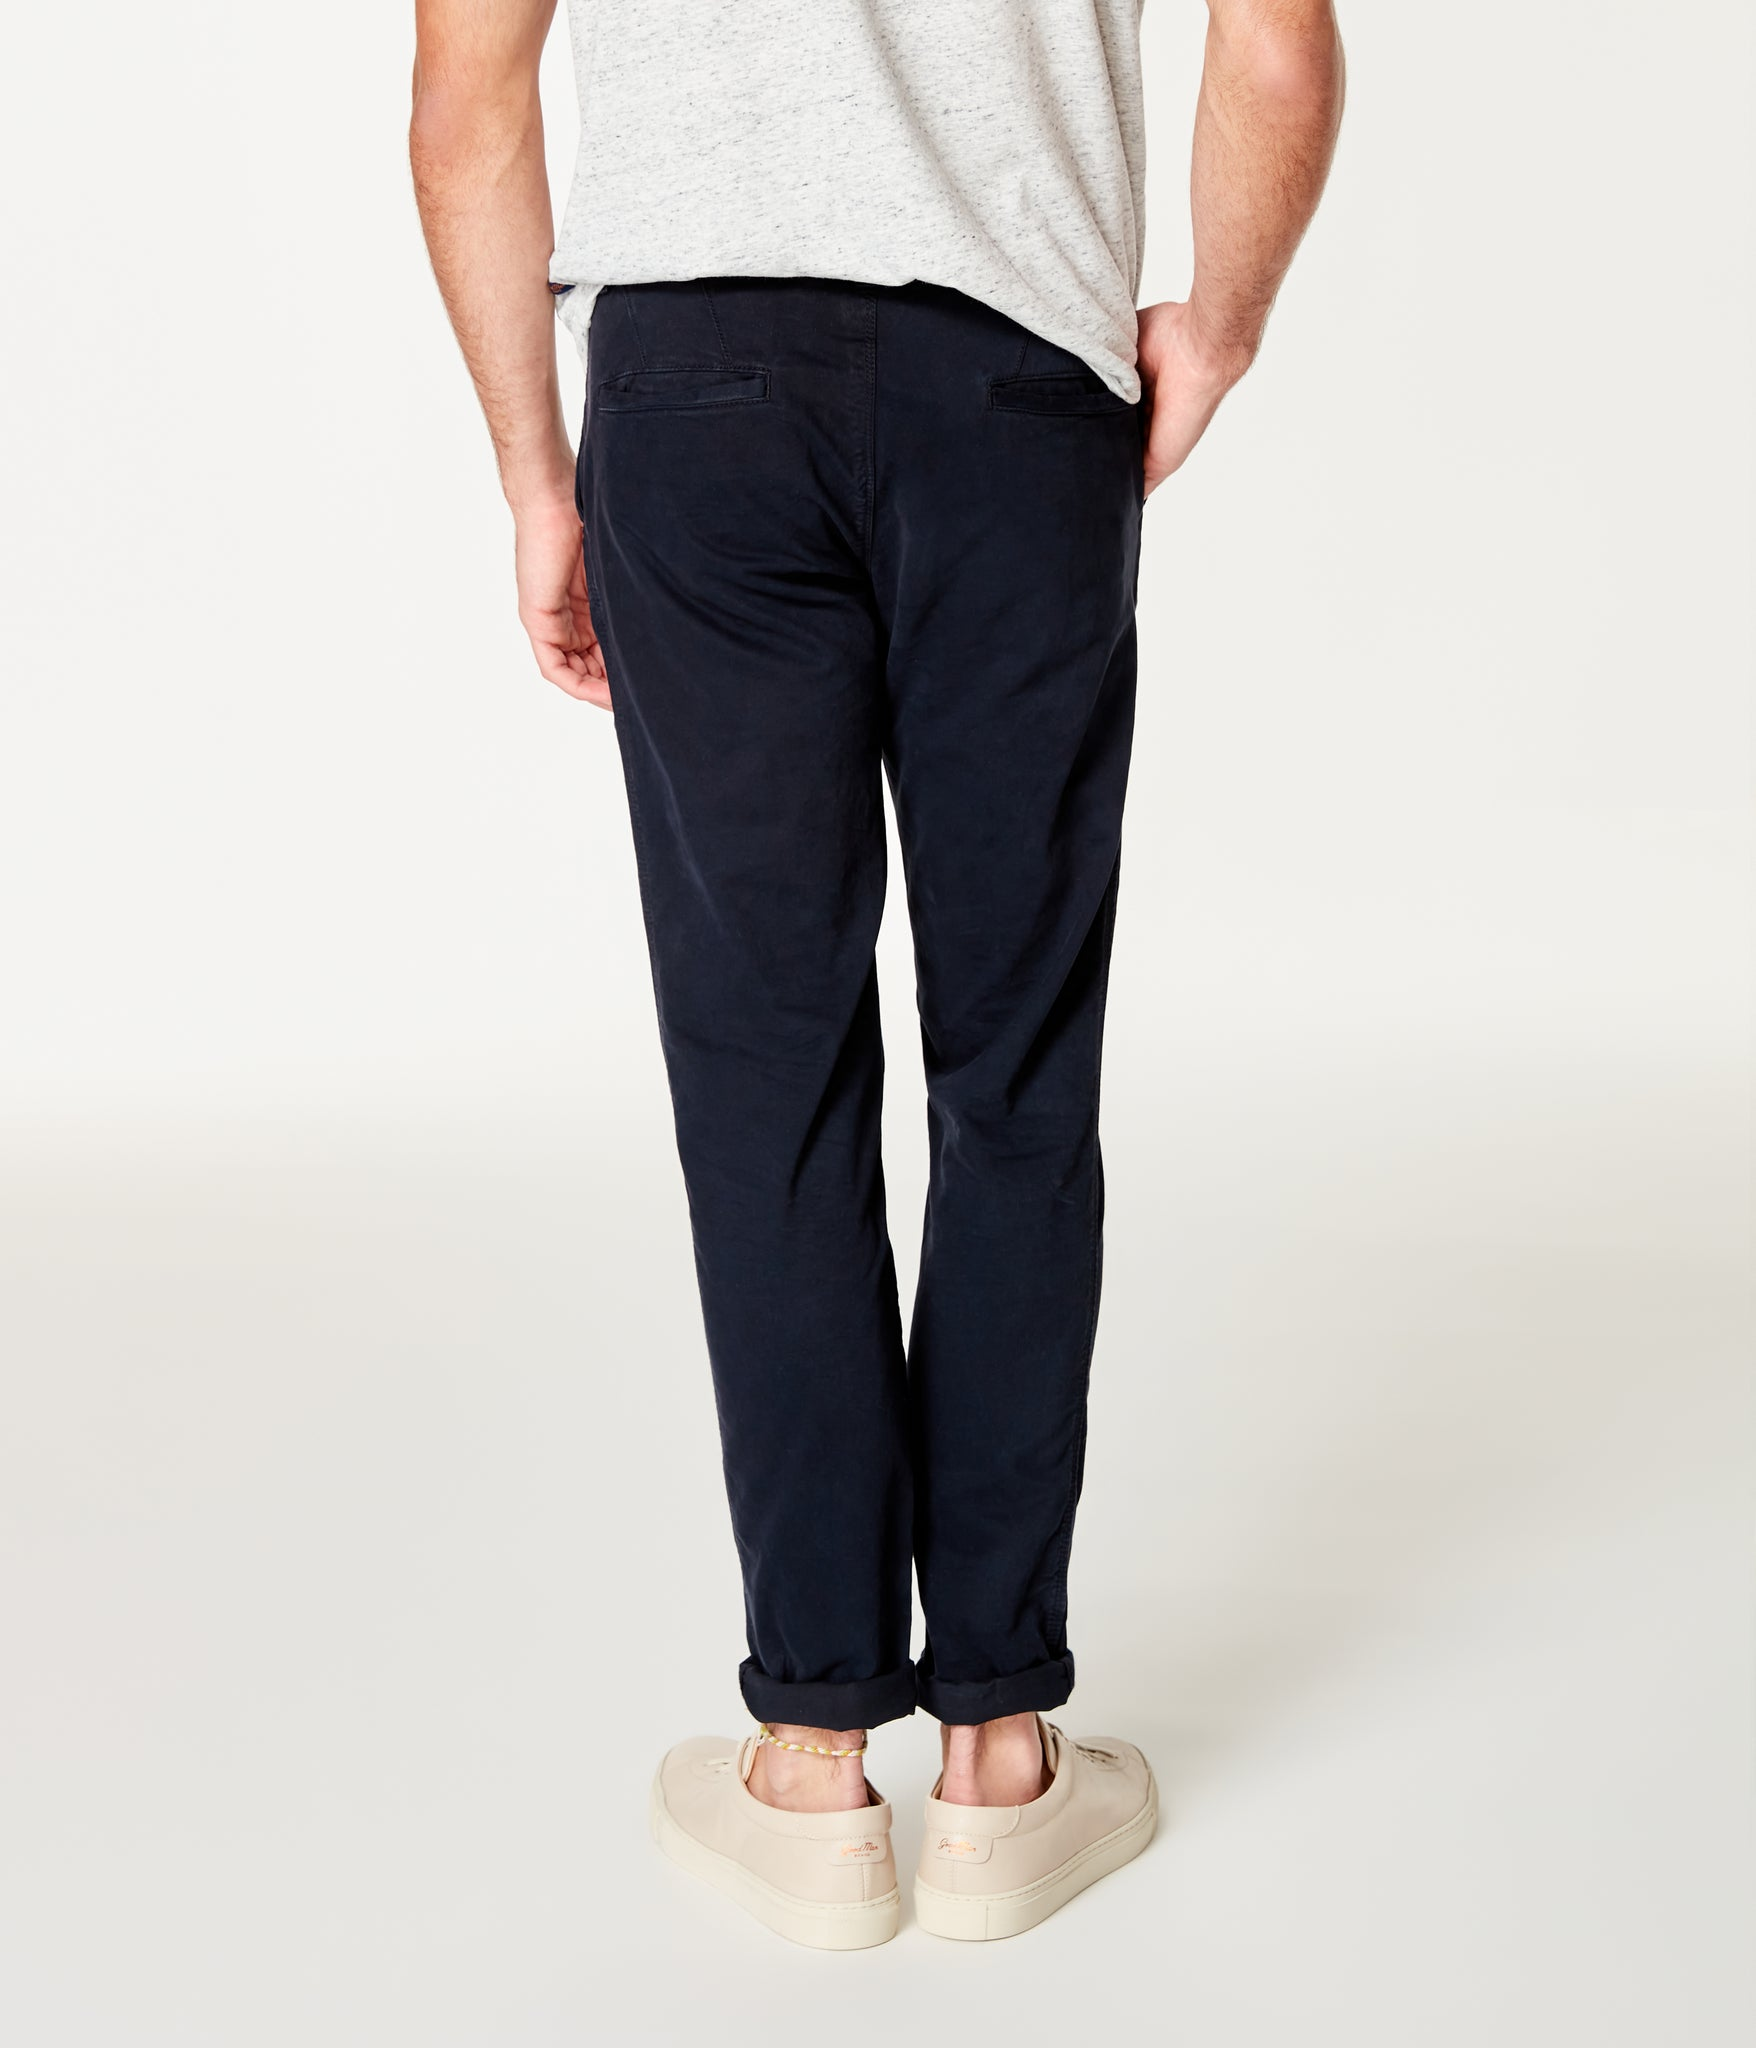 Pro Stretch Twill Star Chino - Black Navy